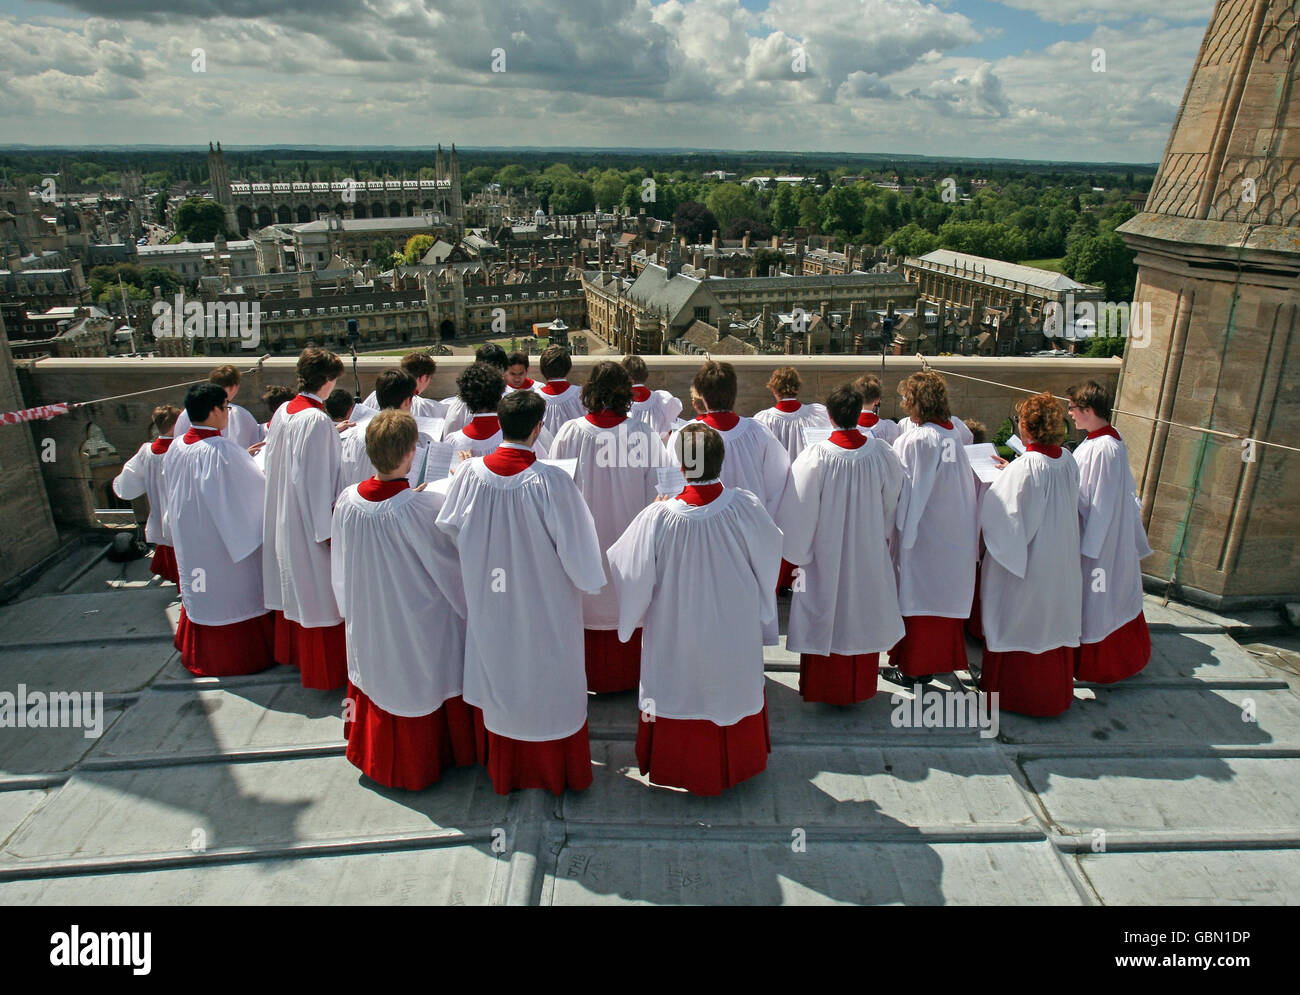 Religion - Ascension Day Hymn - St John's College Chapel Choir  - St John's Chapel, Cambridge - Stock Image